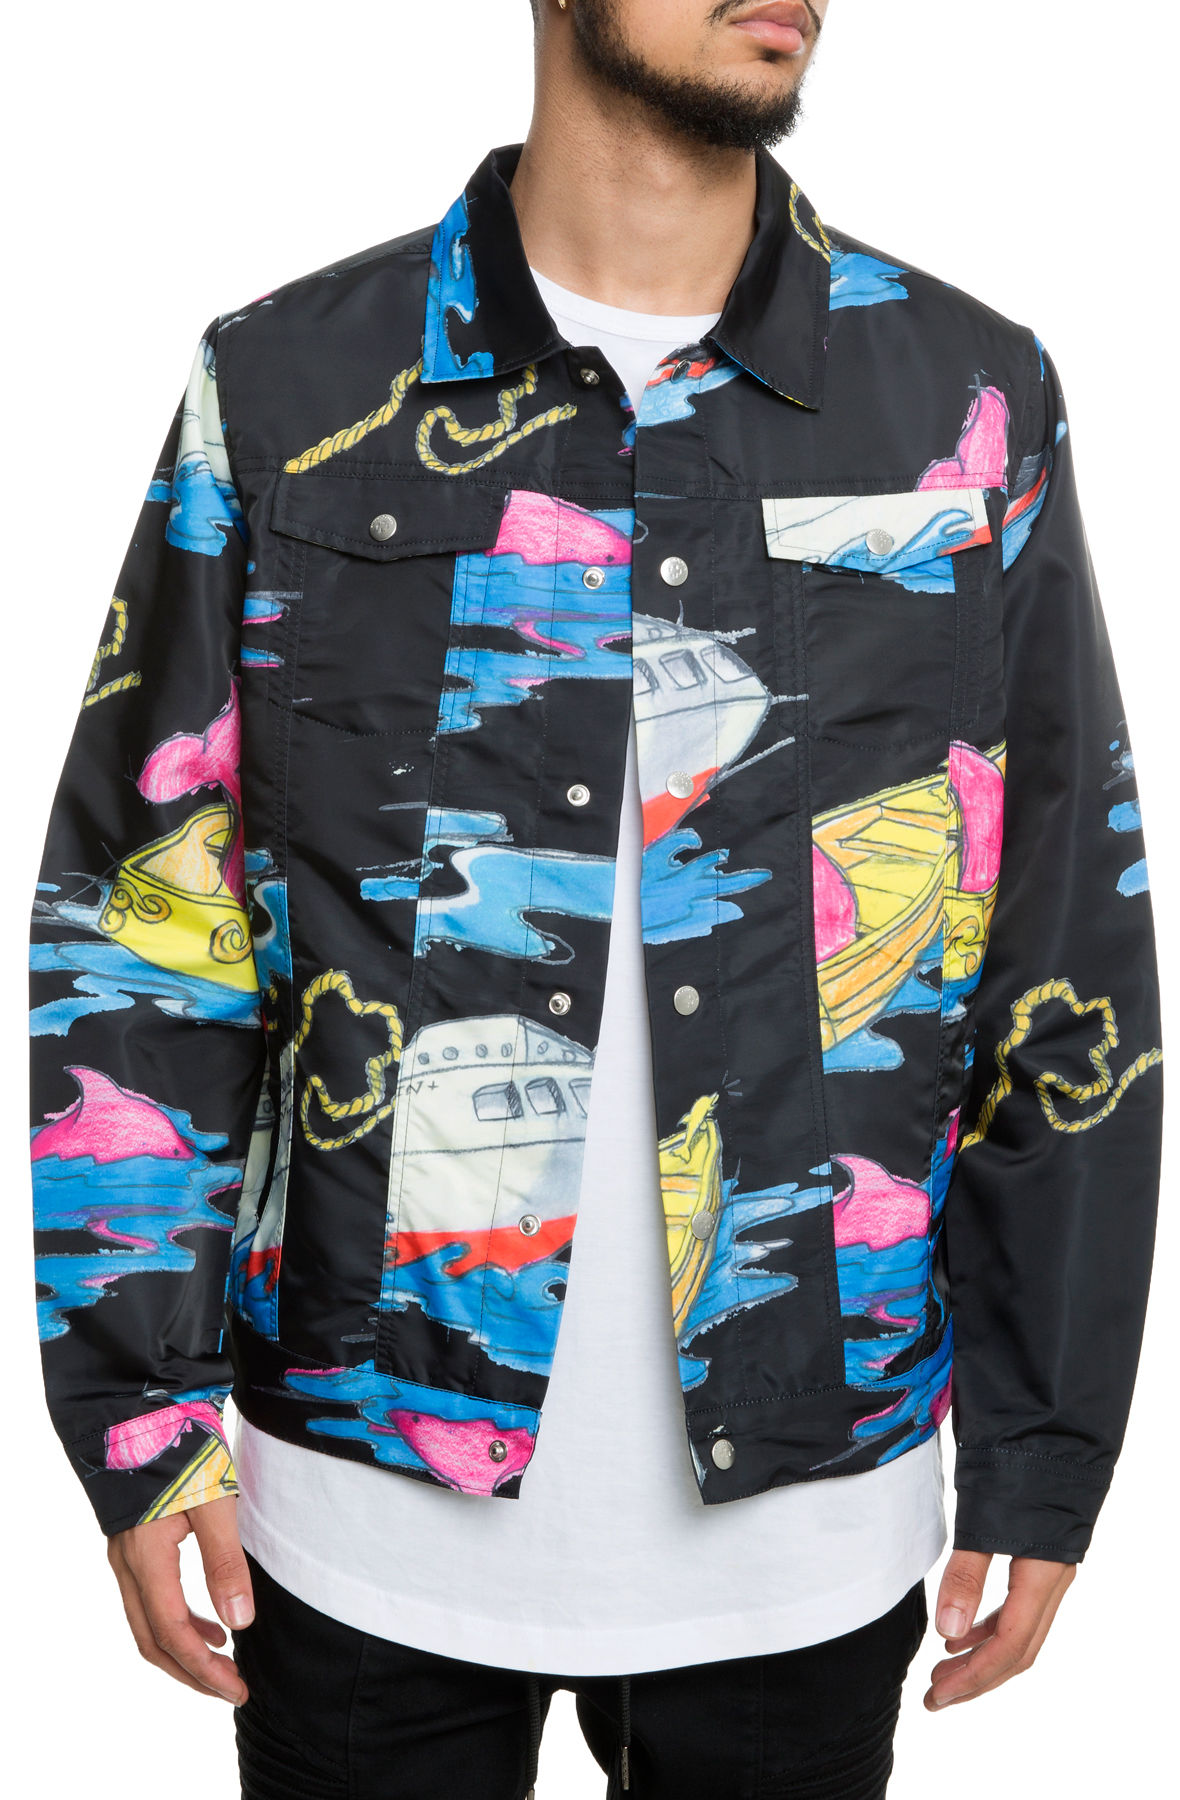 Image of The Sail Away Jacket in Black